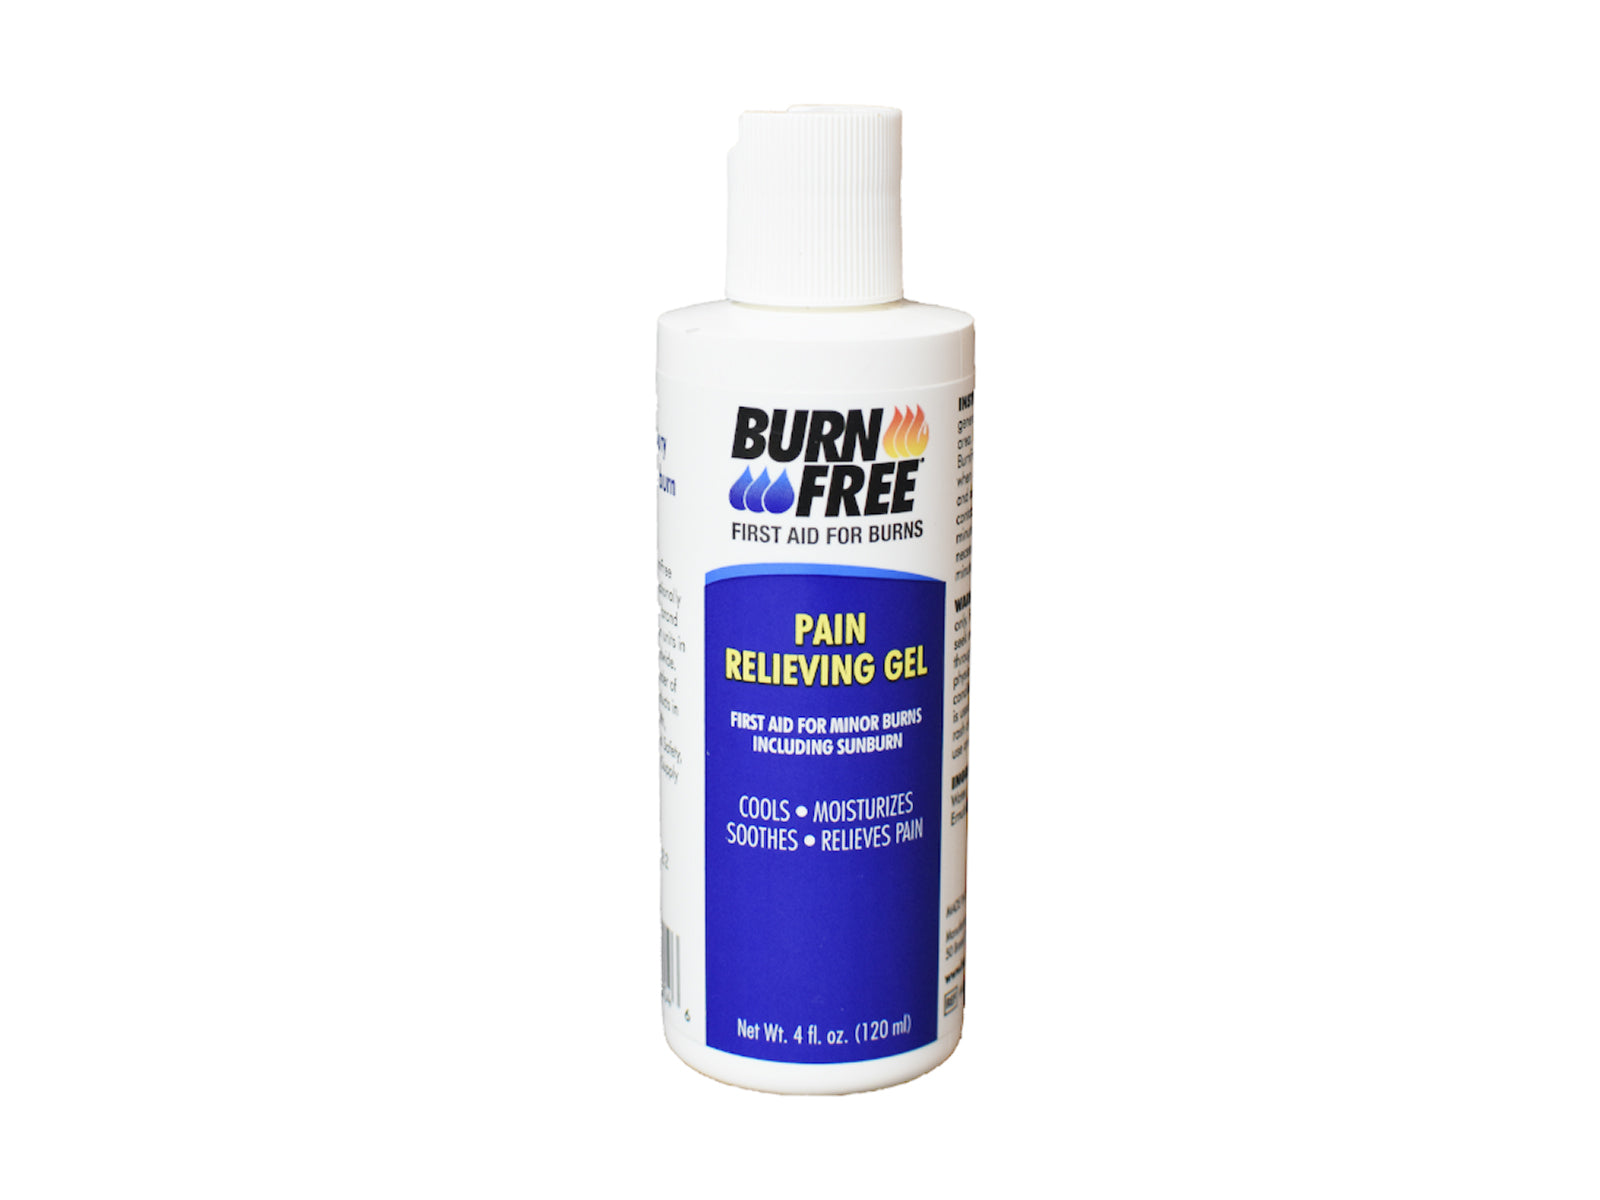 BurnFree Pain Relieving Gel 120ml